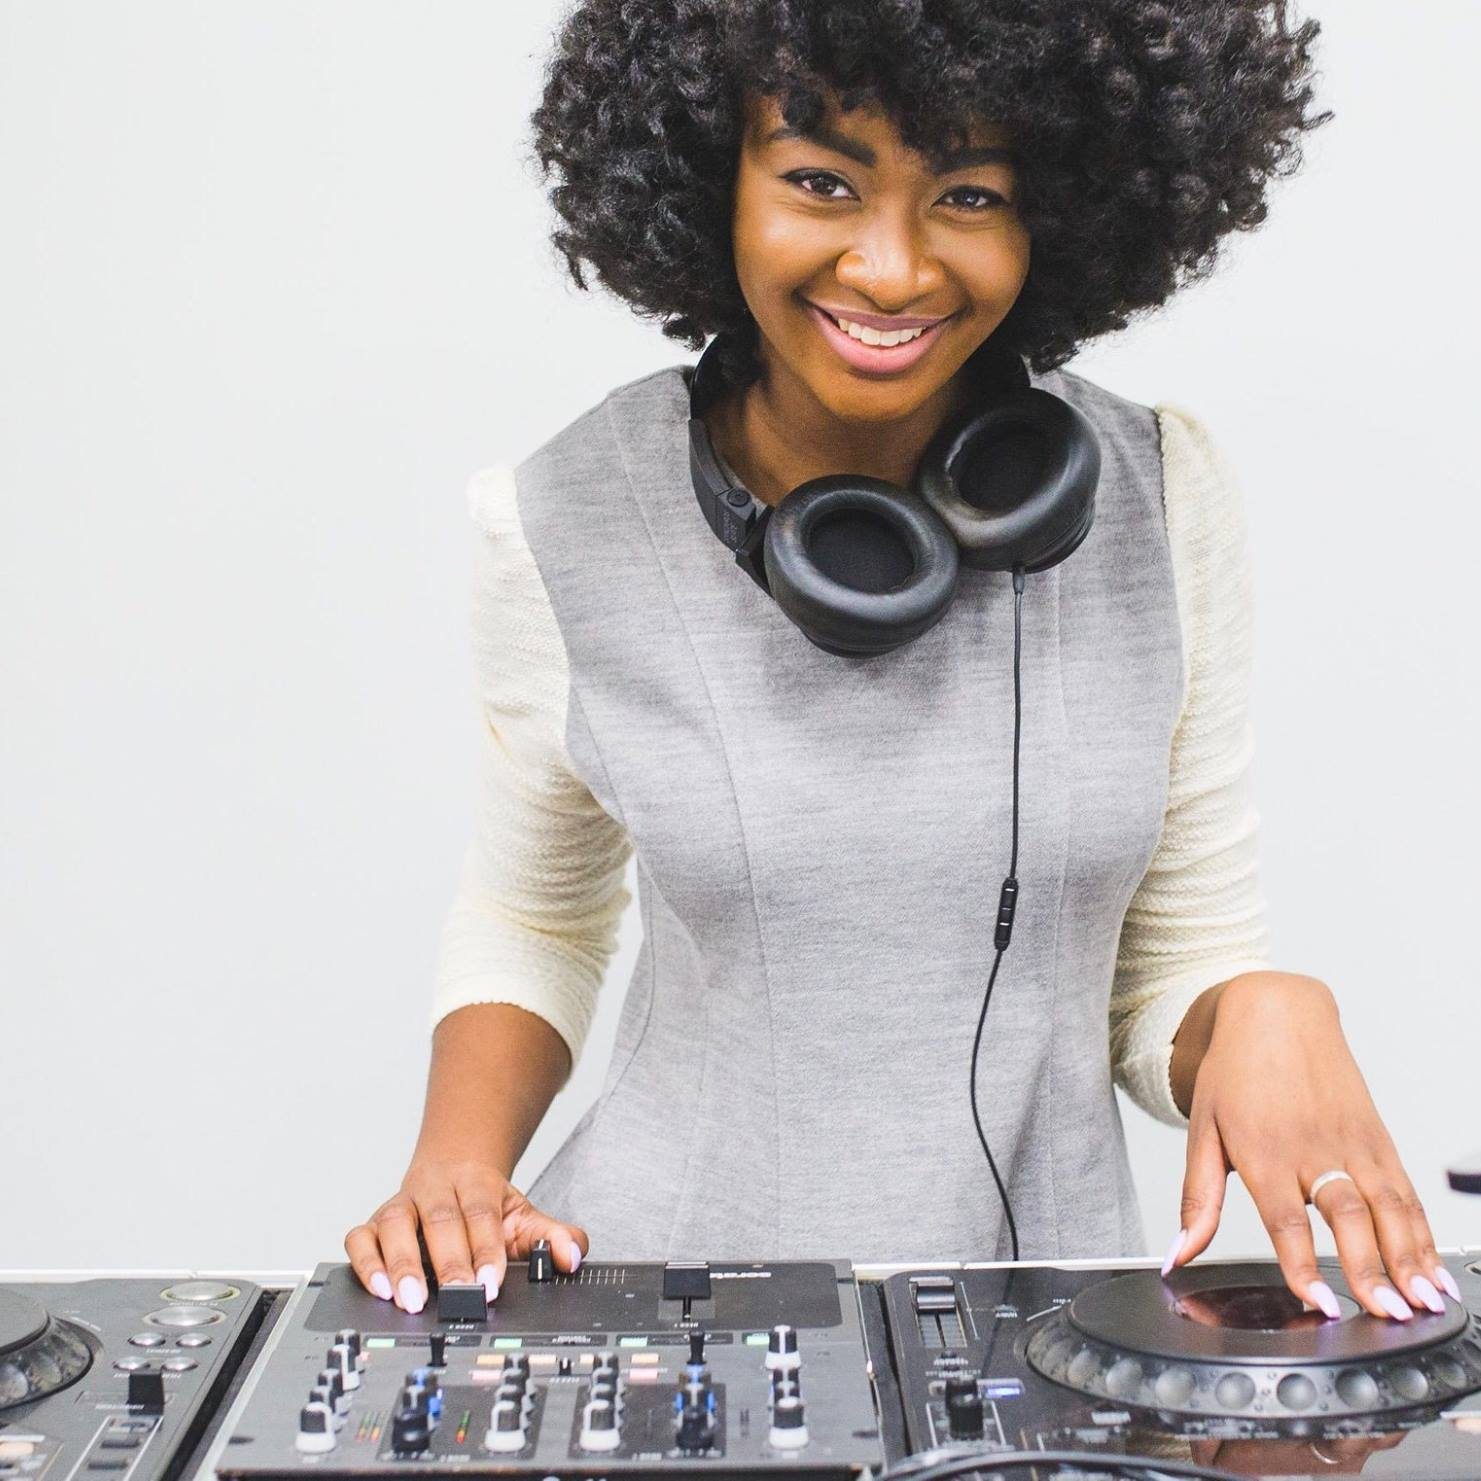 Ashley ashley shanel aka SHANEL THE DJ -